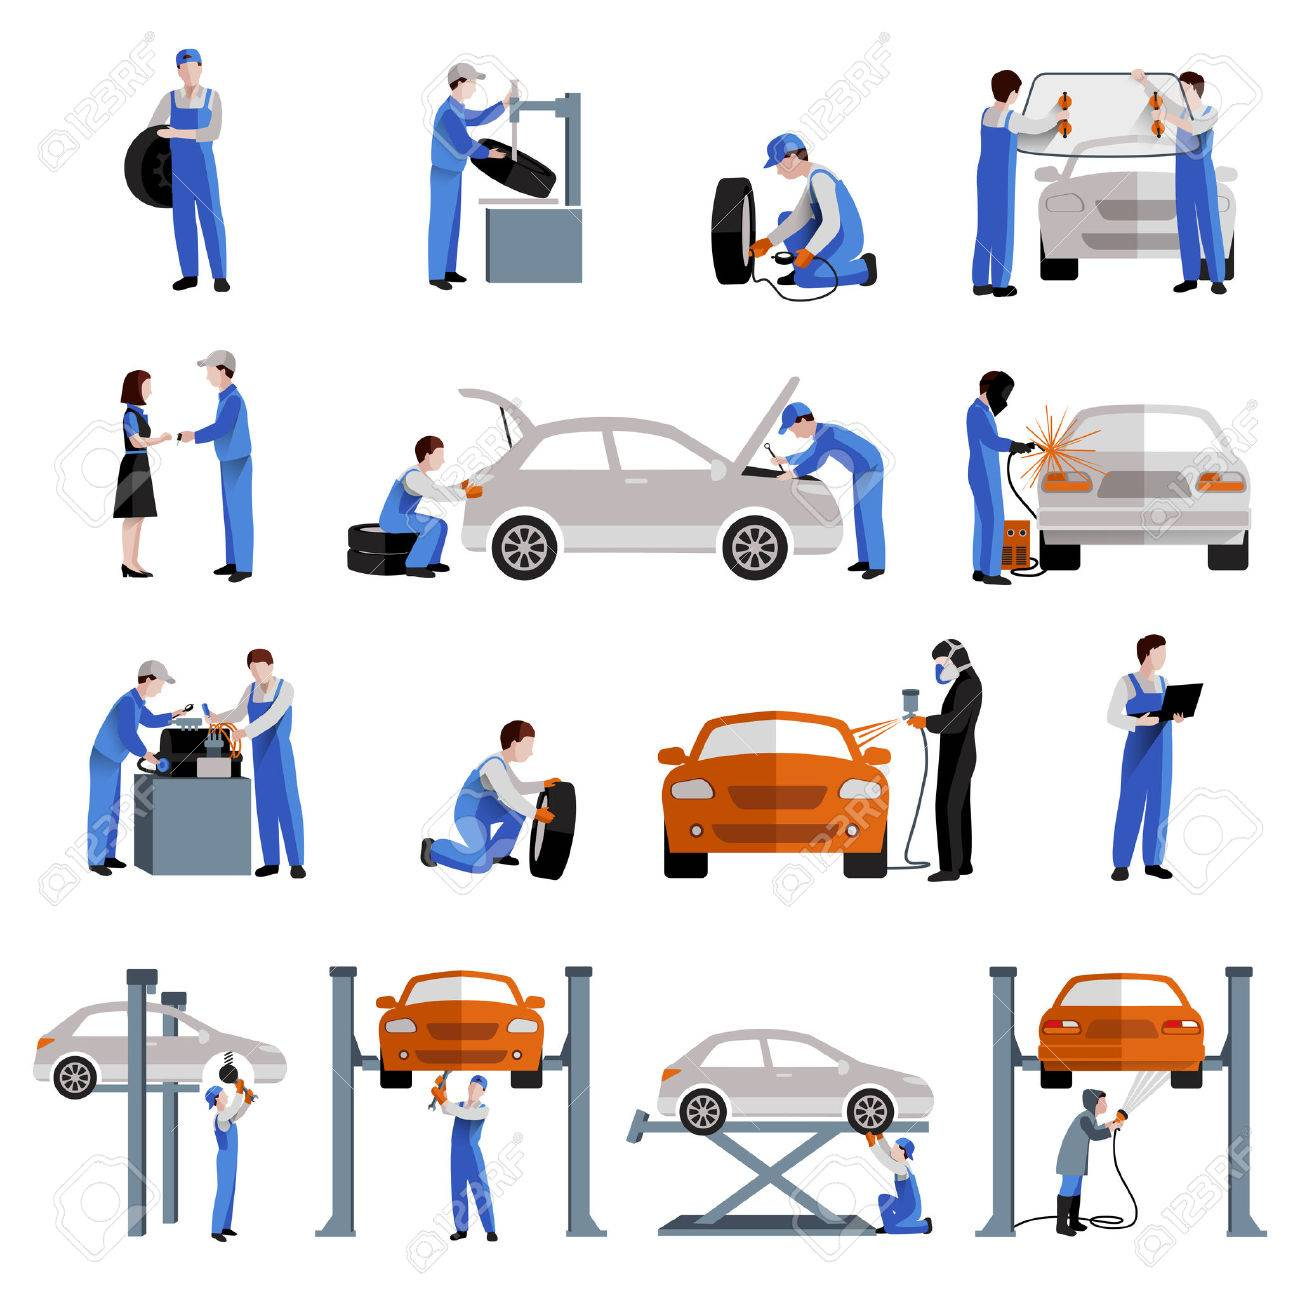 Auto mechanic car service repair and maintenance work icons set isolated vector illustration - 40283822